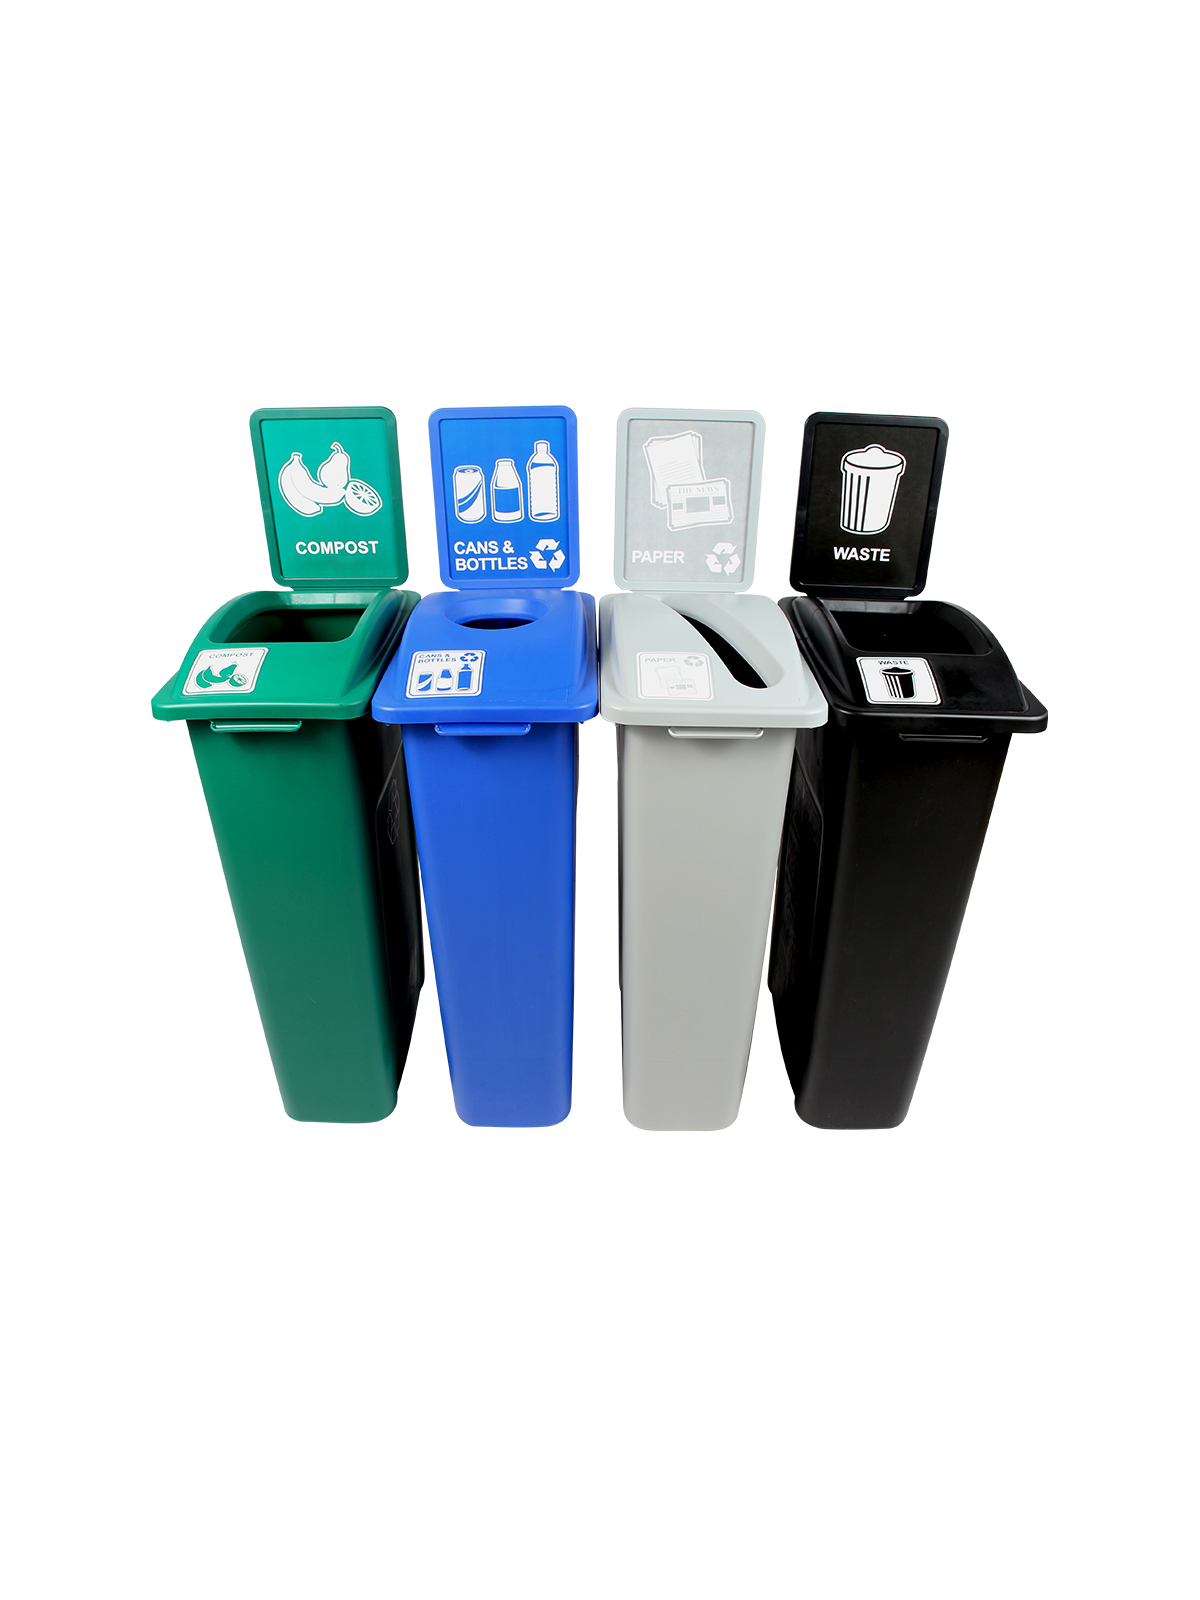 WASTE WATCHER - Quad - Cans & Bottles-Paper-Compost-Waste - Circle-Slot-Full - Blue-Grey-Green-Black